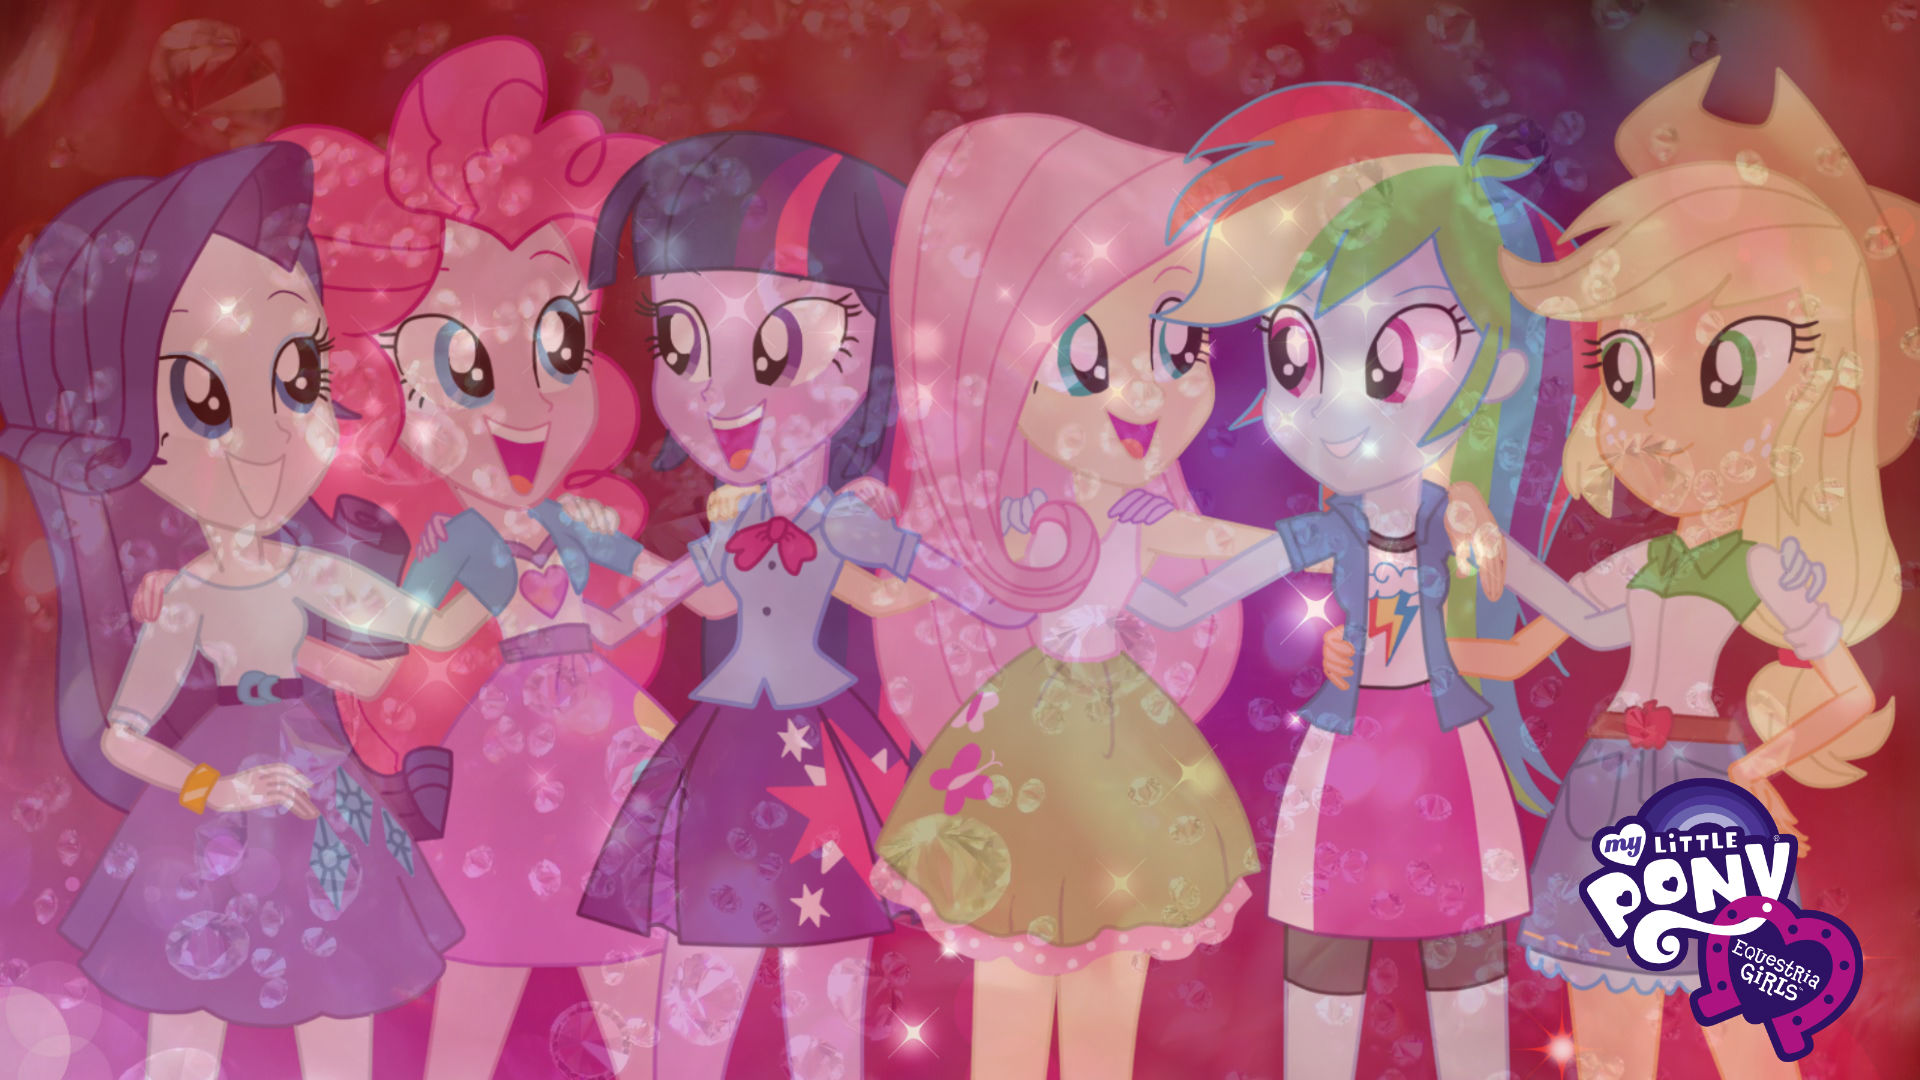 My Little Pony Equestria Girls Wallpaper By Infantry00 On Deviantart